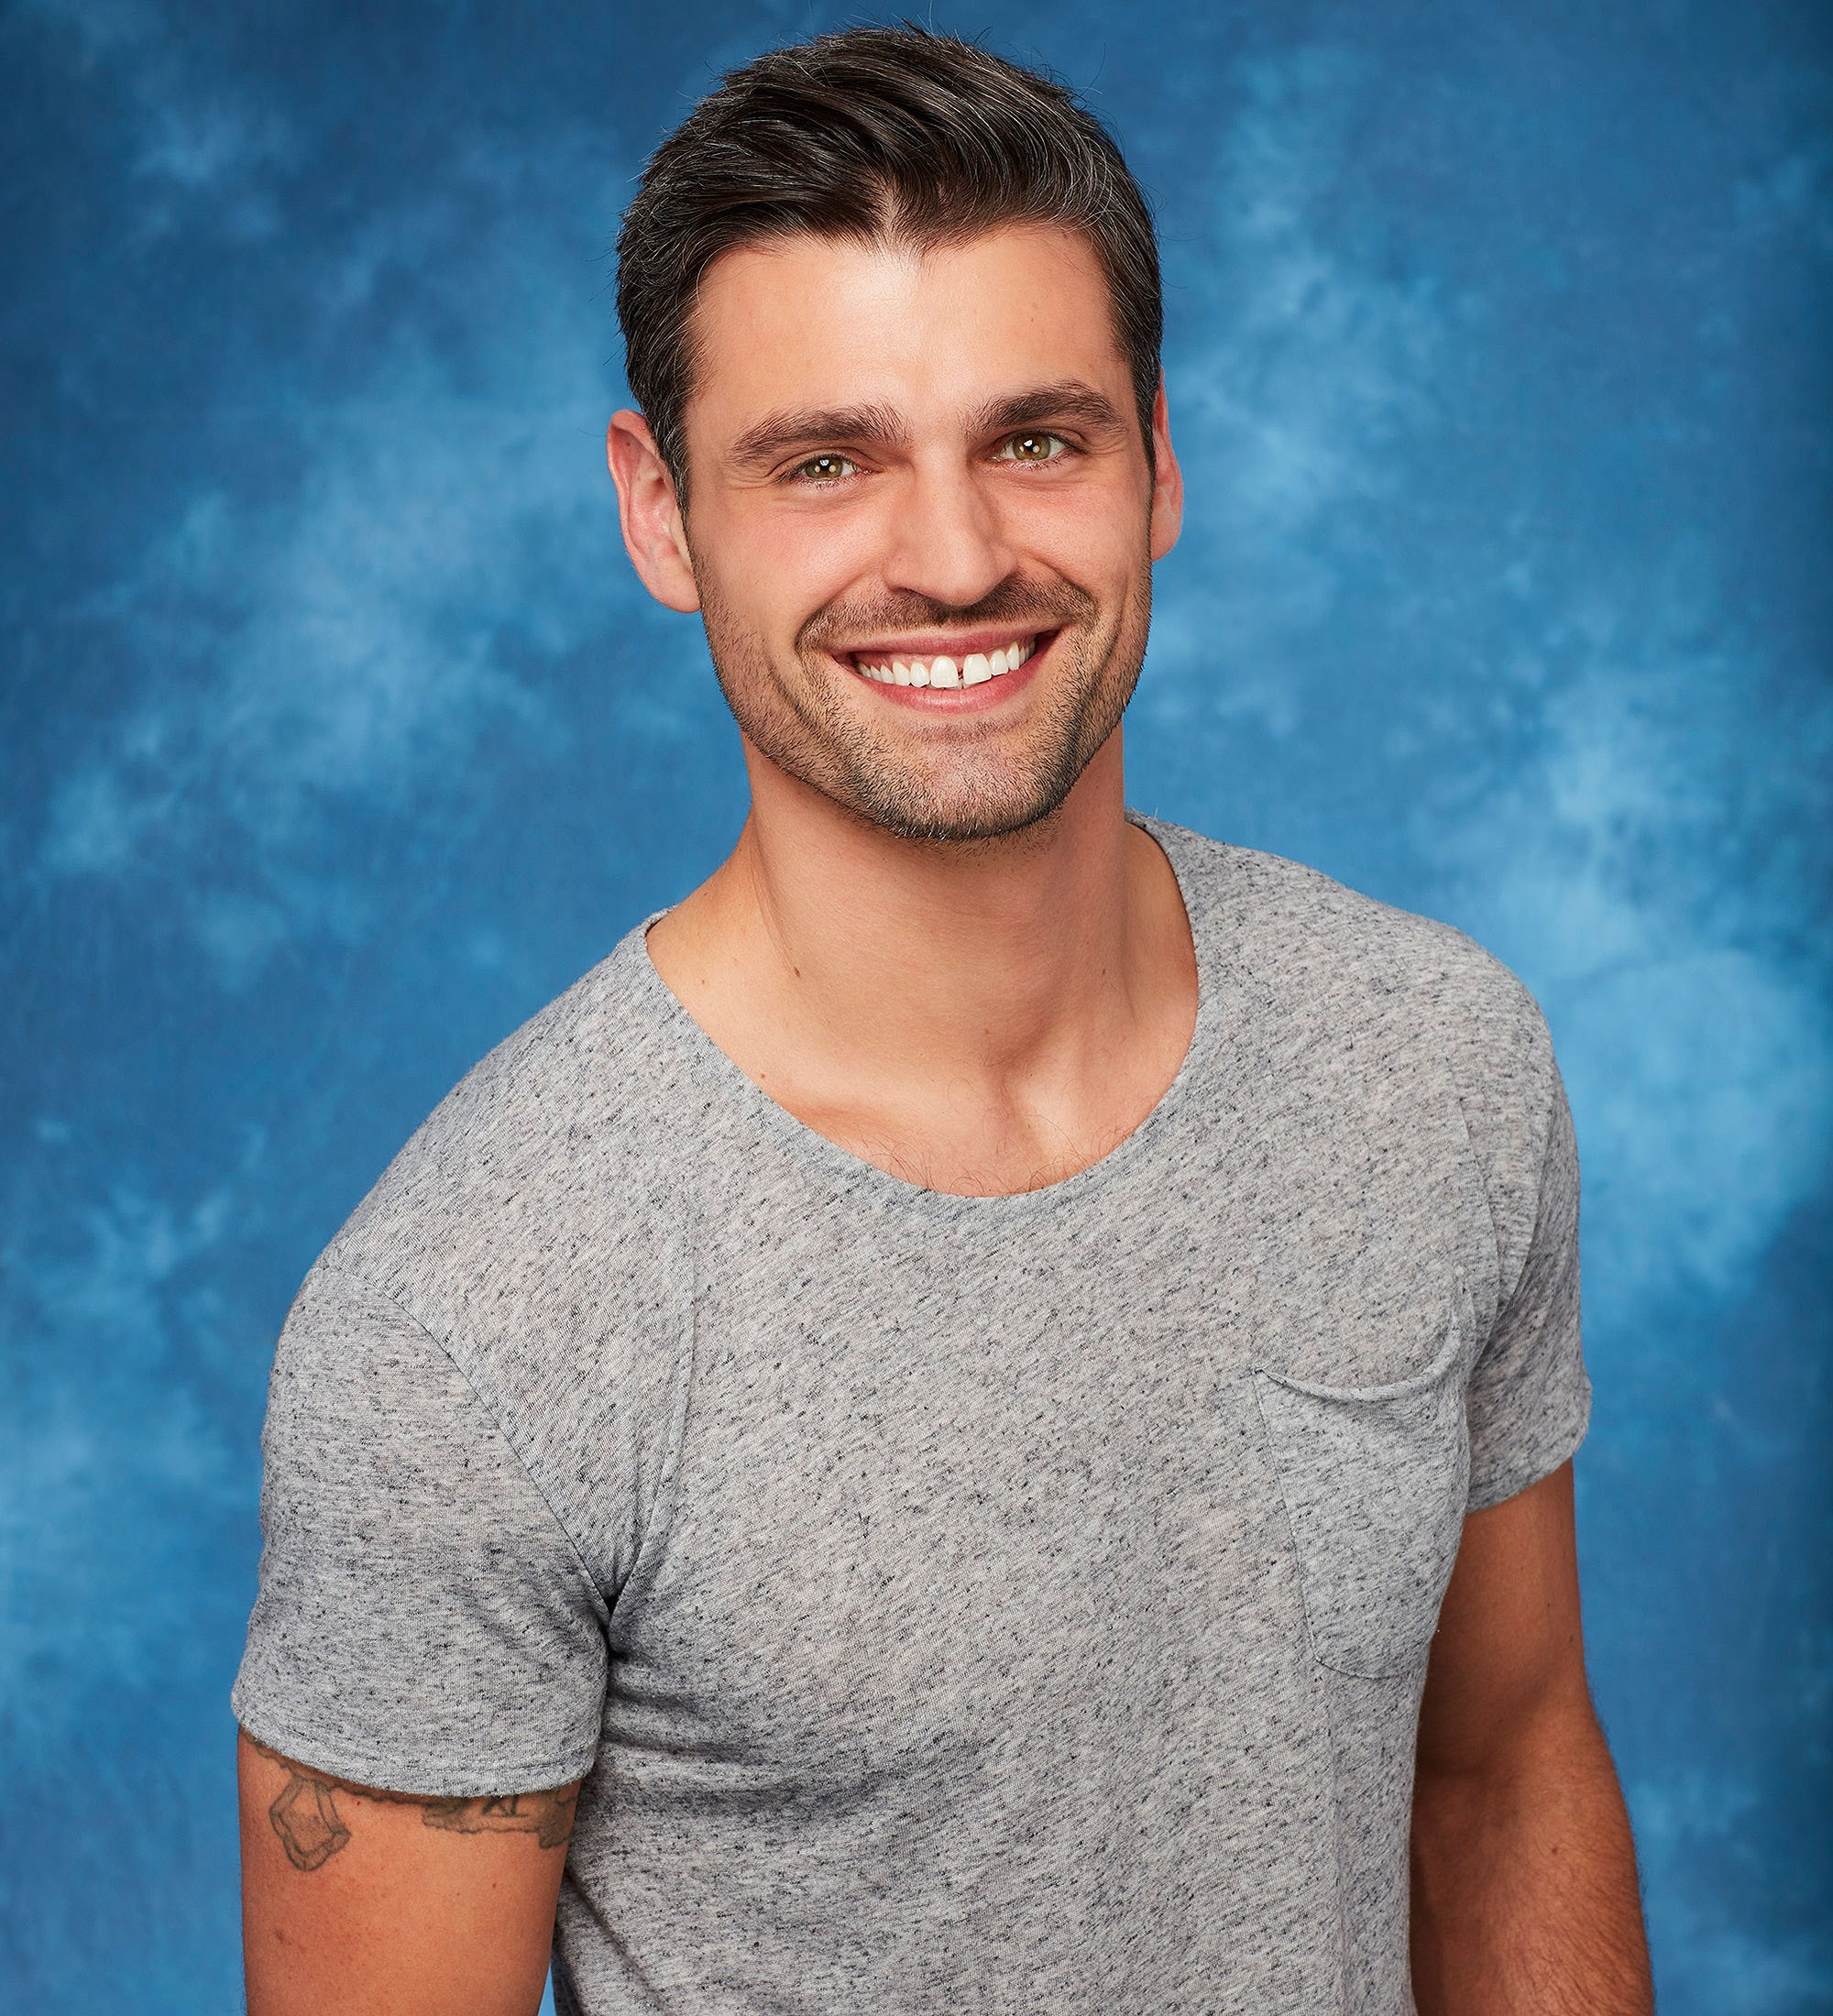 Fans Split After The Bachelorette Rachel Lindsay Chooses Miami Chiropractor Bryan Abasolo